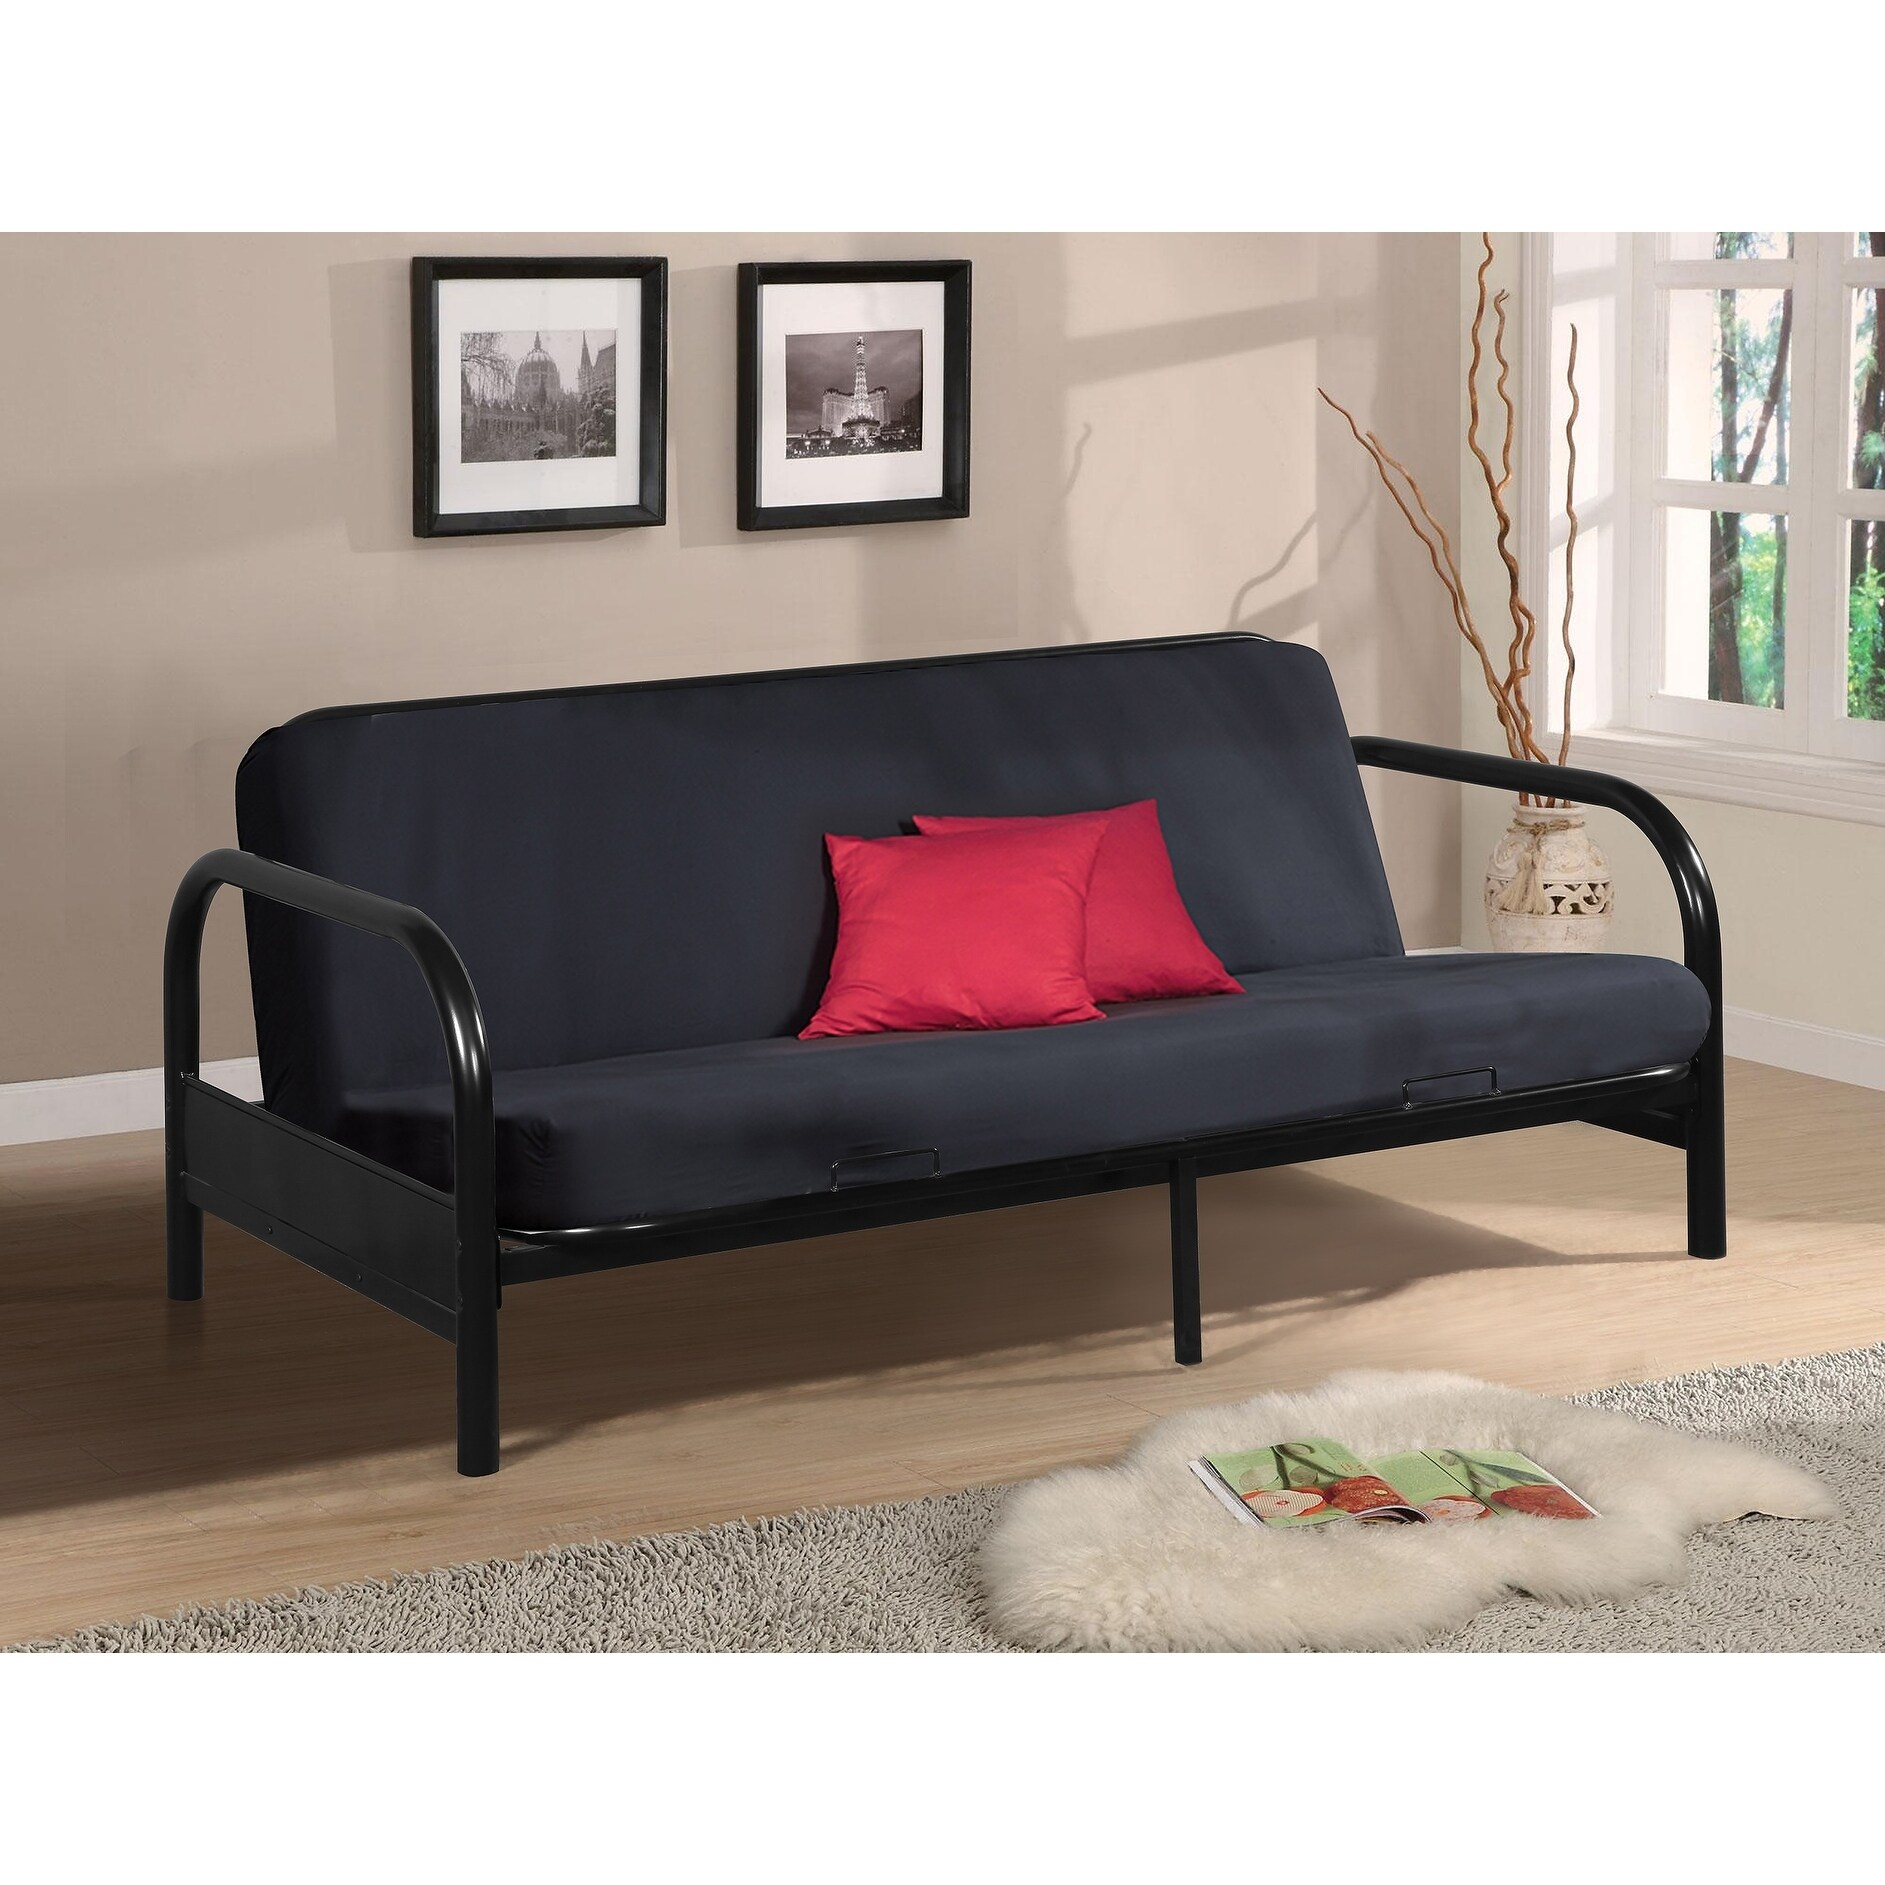 Black Steel Bi Fold Full Size Futon